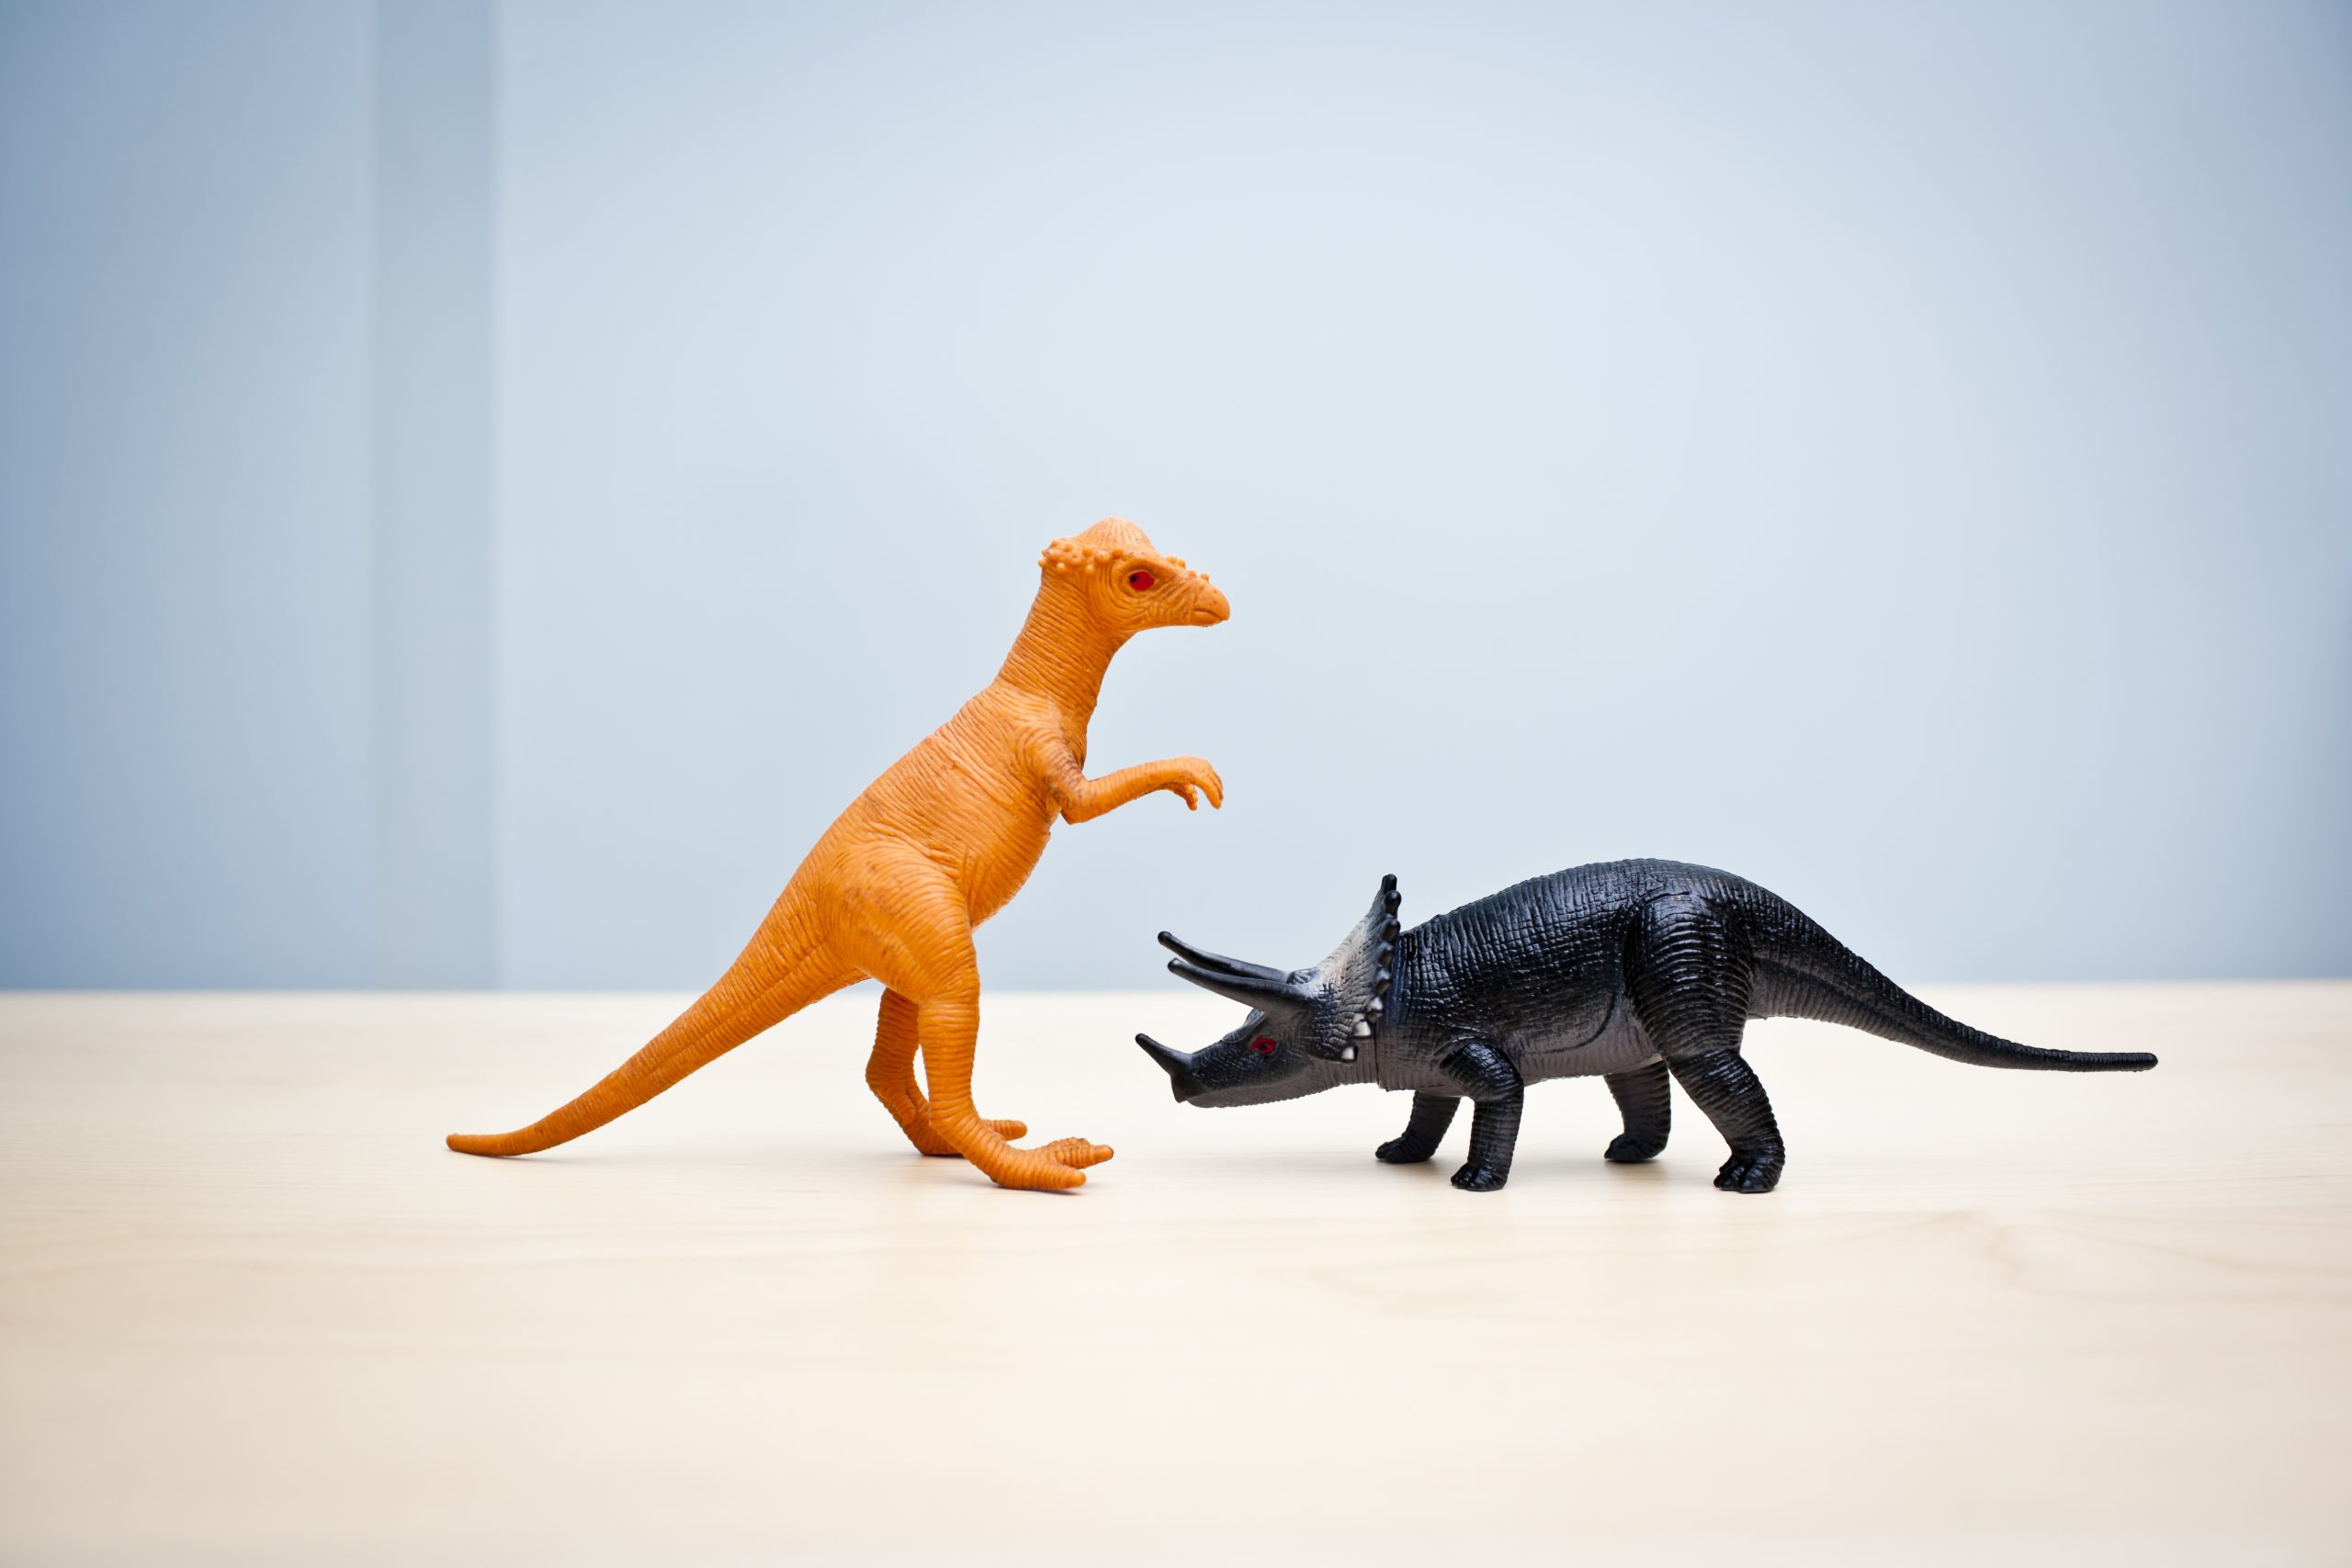 Dinosaurs In Love song